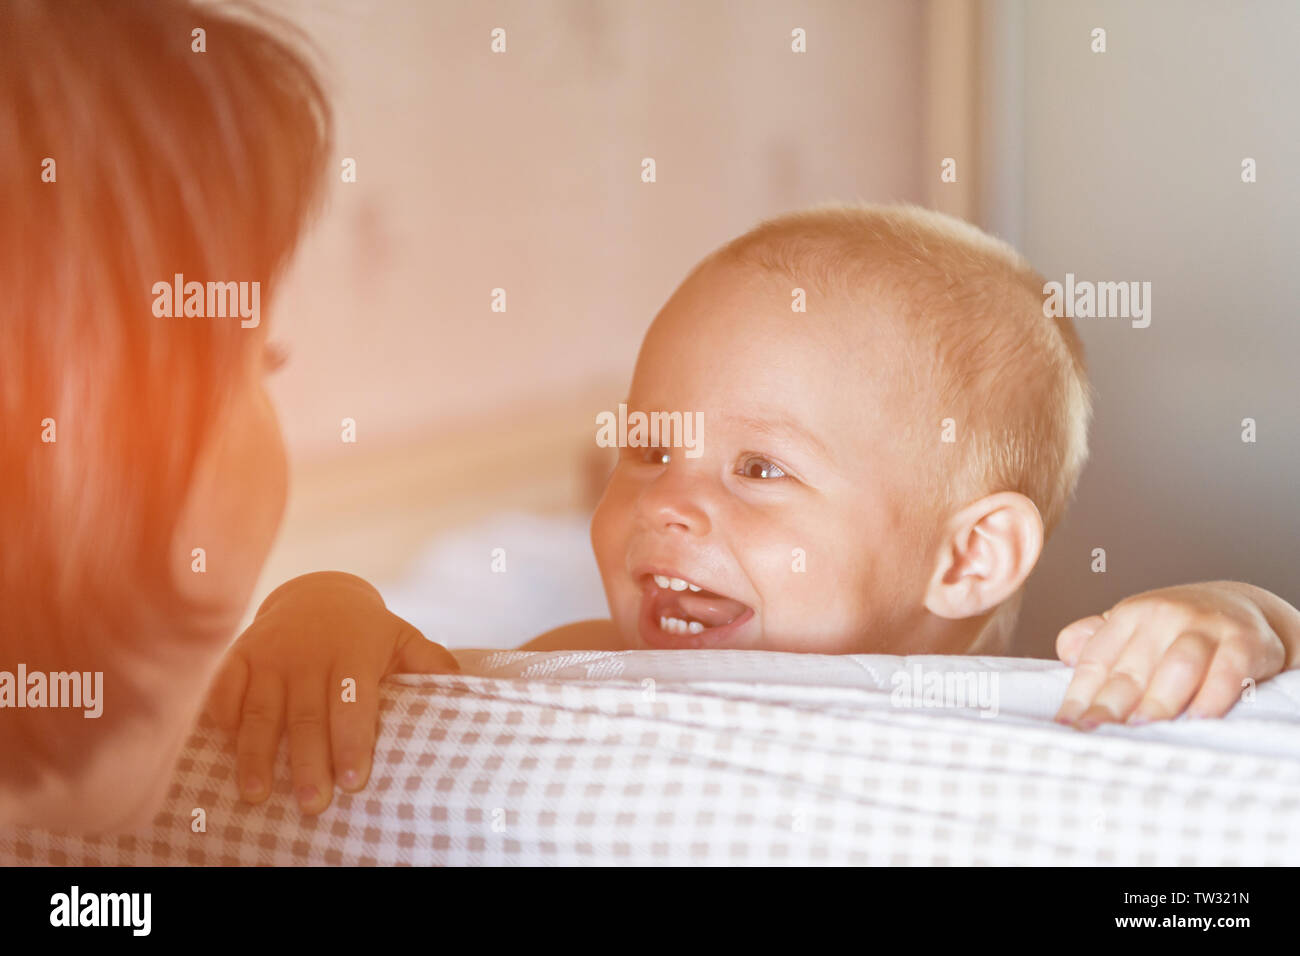 Little toddler boy playing on the bed. Cute kid smiling and hiding under cover. Palyful and mischievous eyes. Hide-and-seek. Children having fun playi - Stock Image